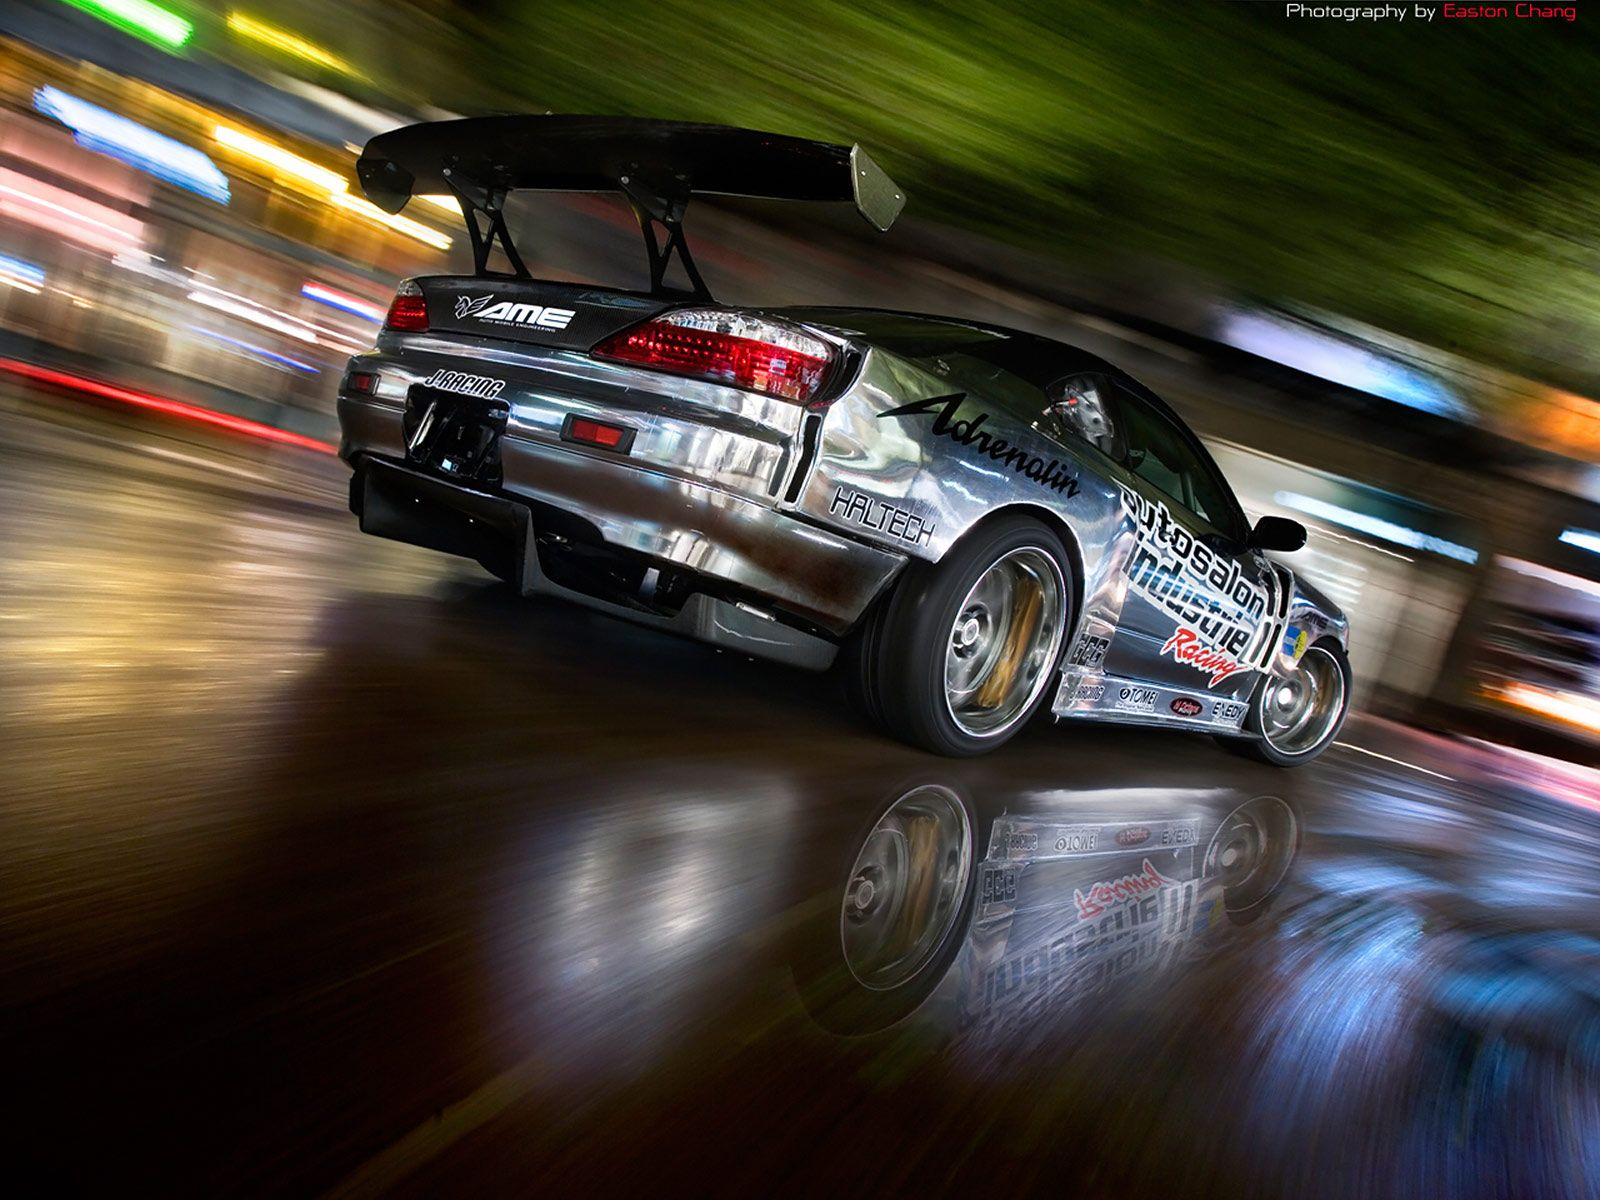 Drifting Cars Wallpaper Wallpapersafari